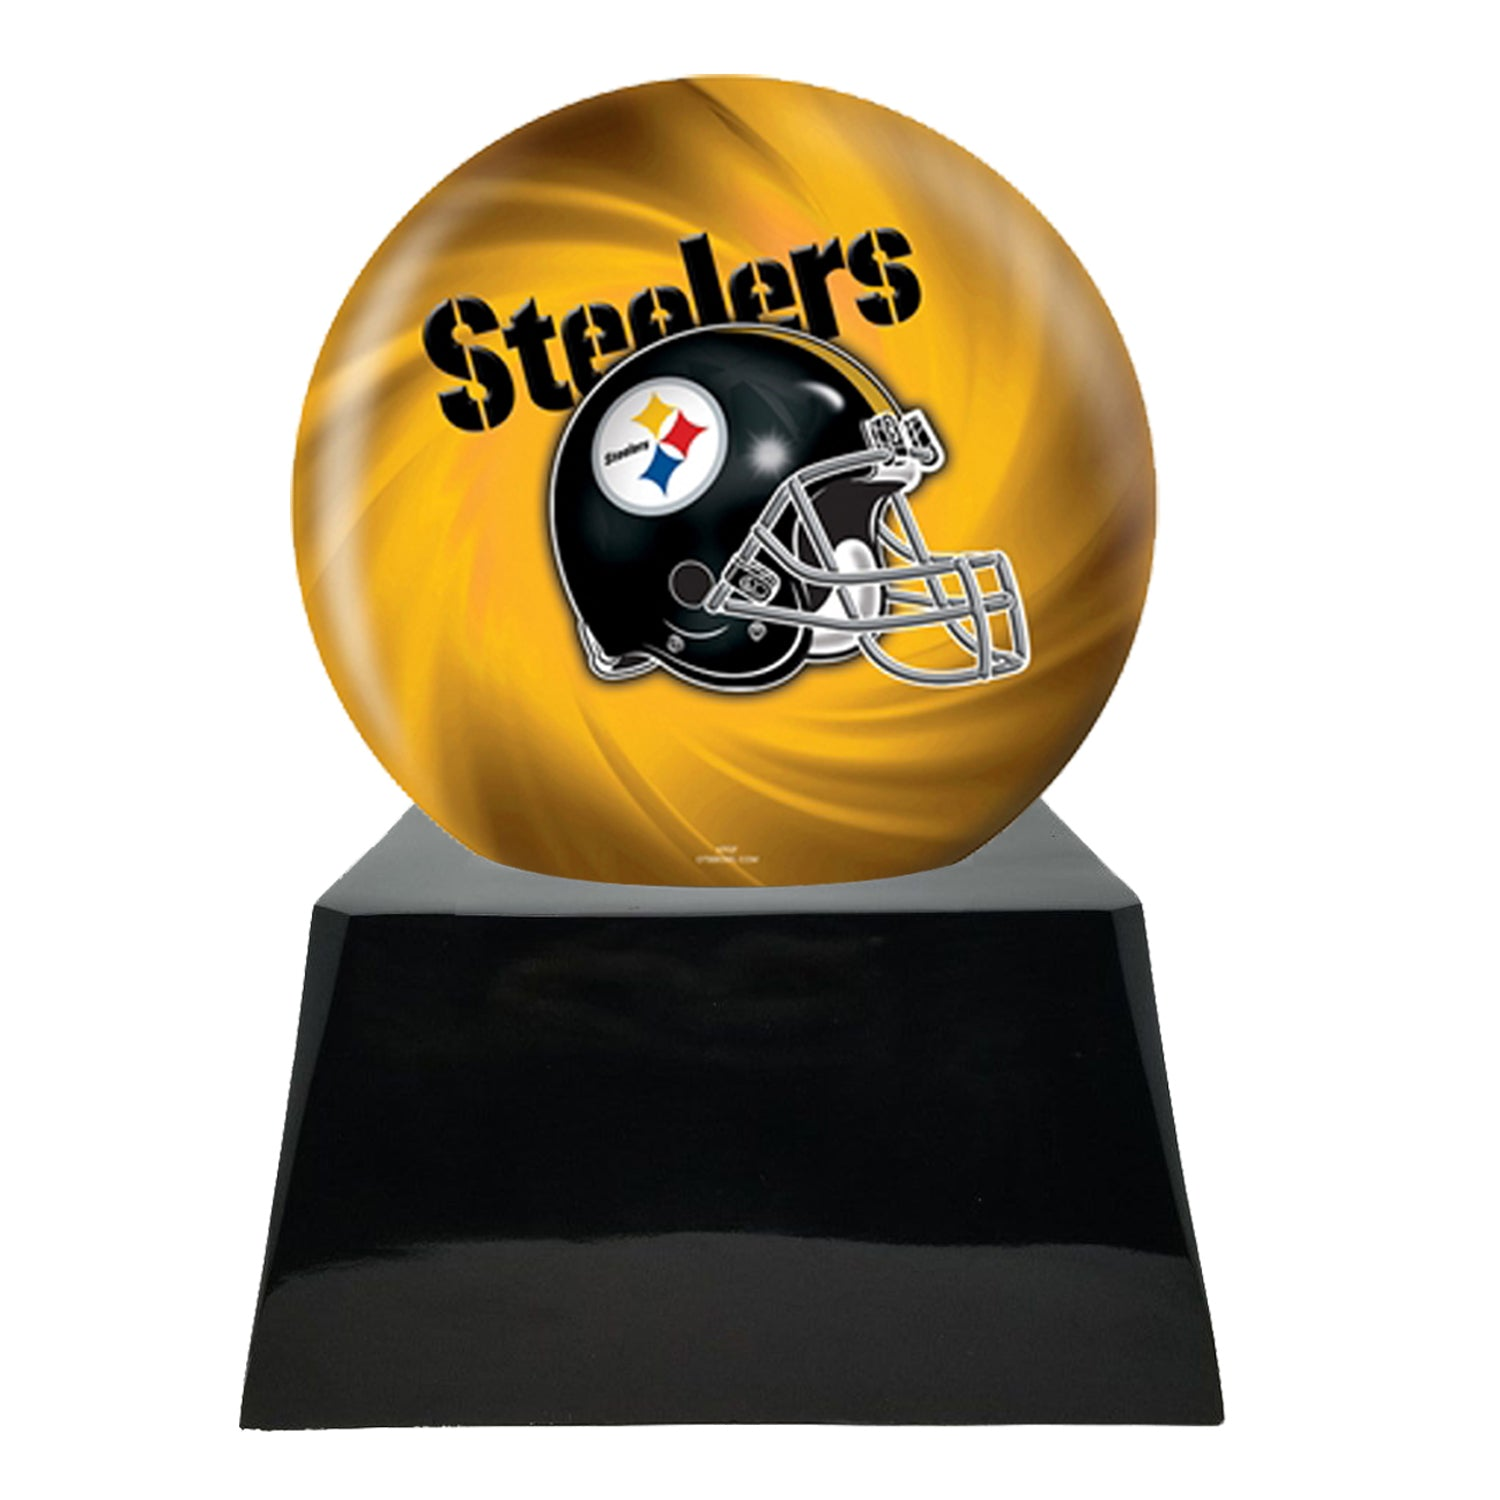 Football Cremation Urn and Pittsburgh Steelers Ball Decor with Custom Metal Plaque, Sports Urn - Divinity Urns